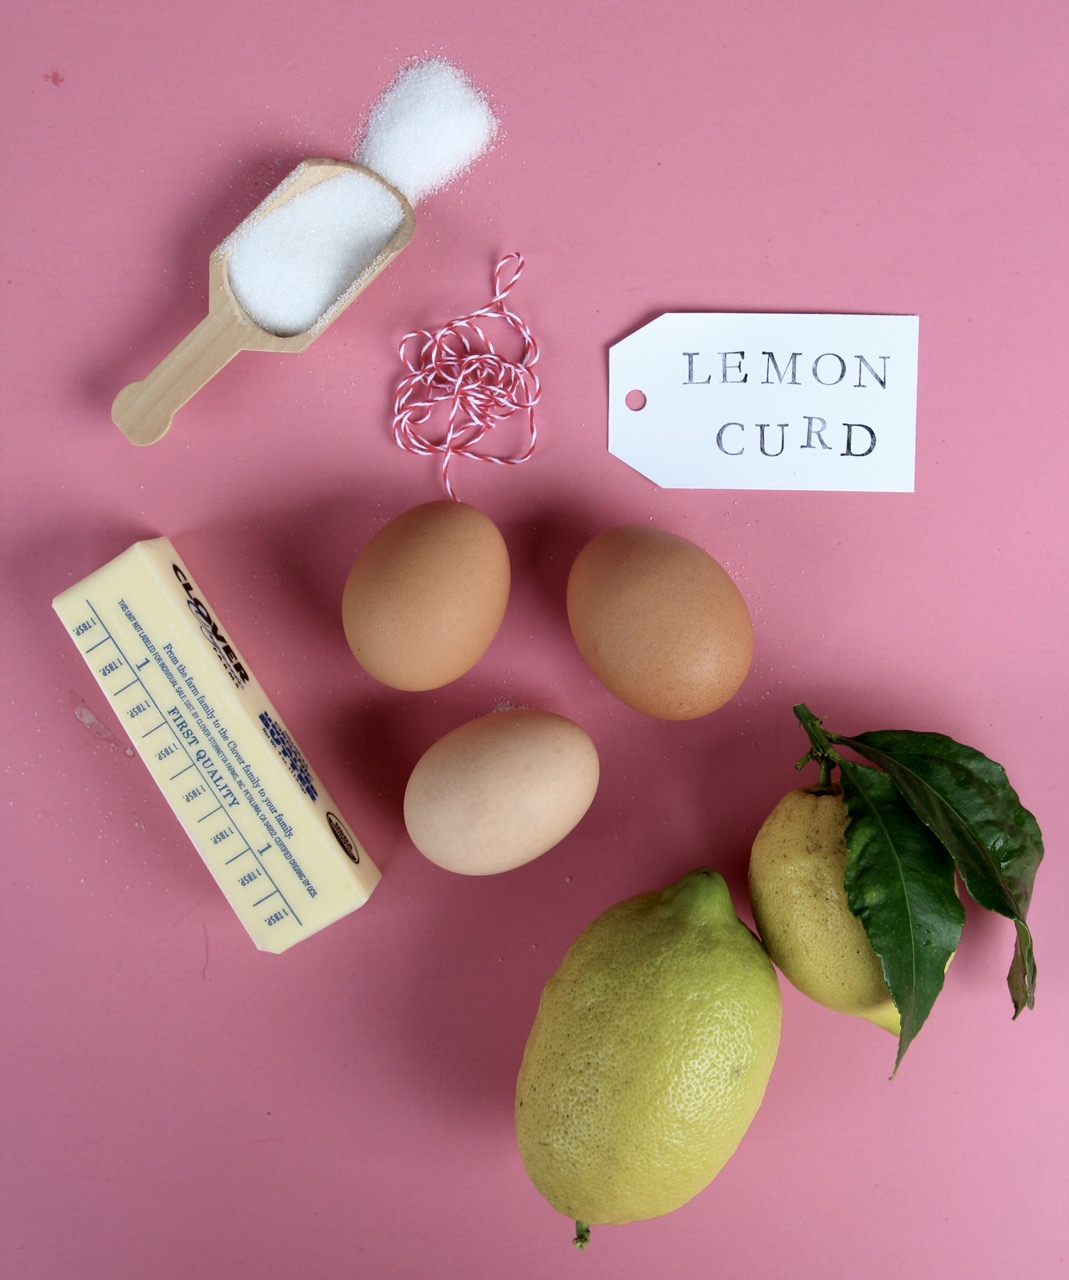 ingredients for homemade lemon curd